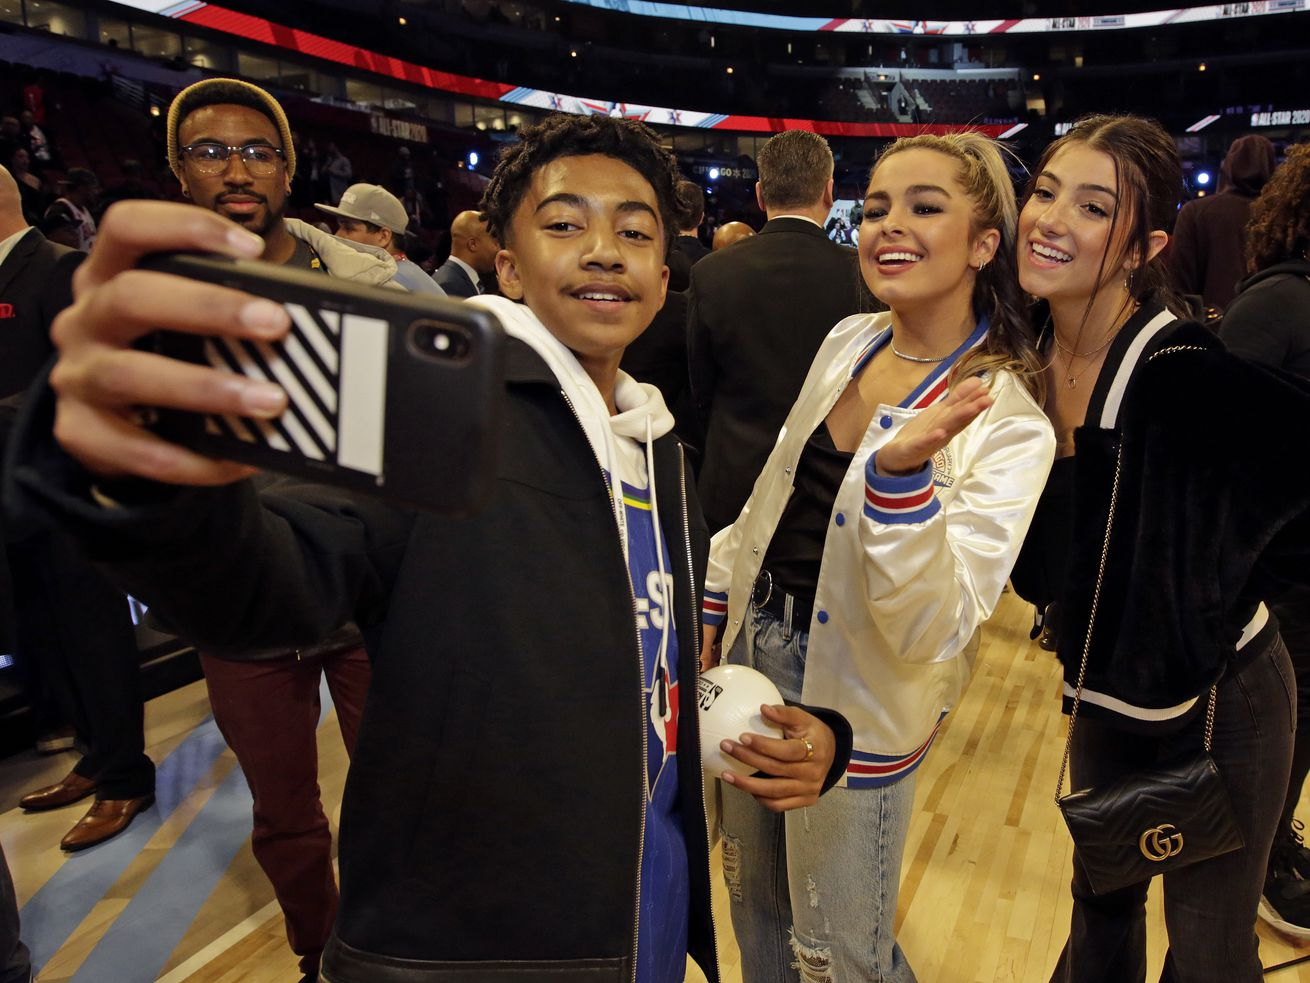 Actor Miles Brown takes a selfie with TikTok stars Addison Rae Easterling and Charlie D'Amelio during the 69th NBA All-Star Game.